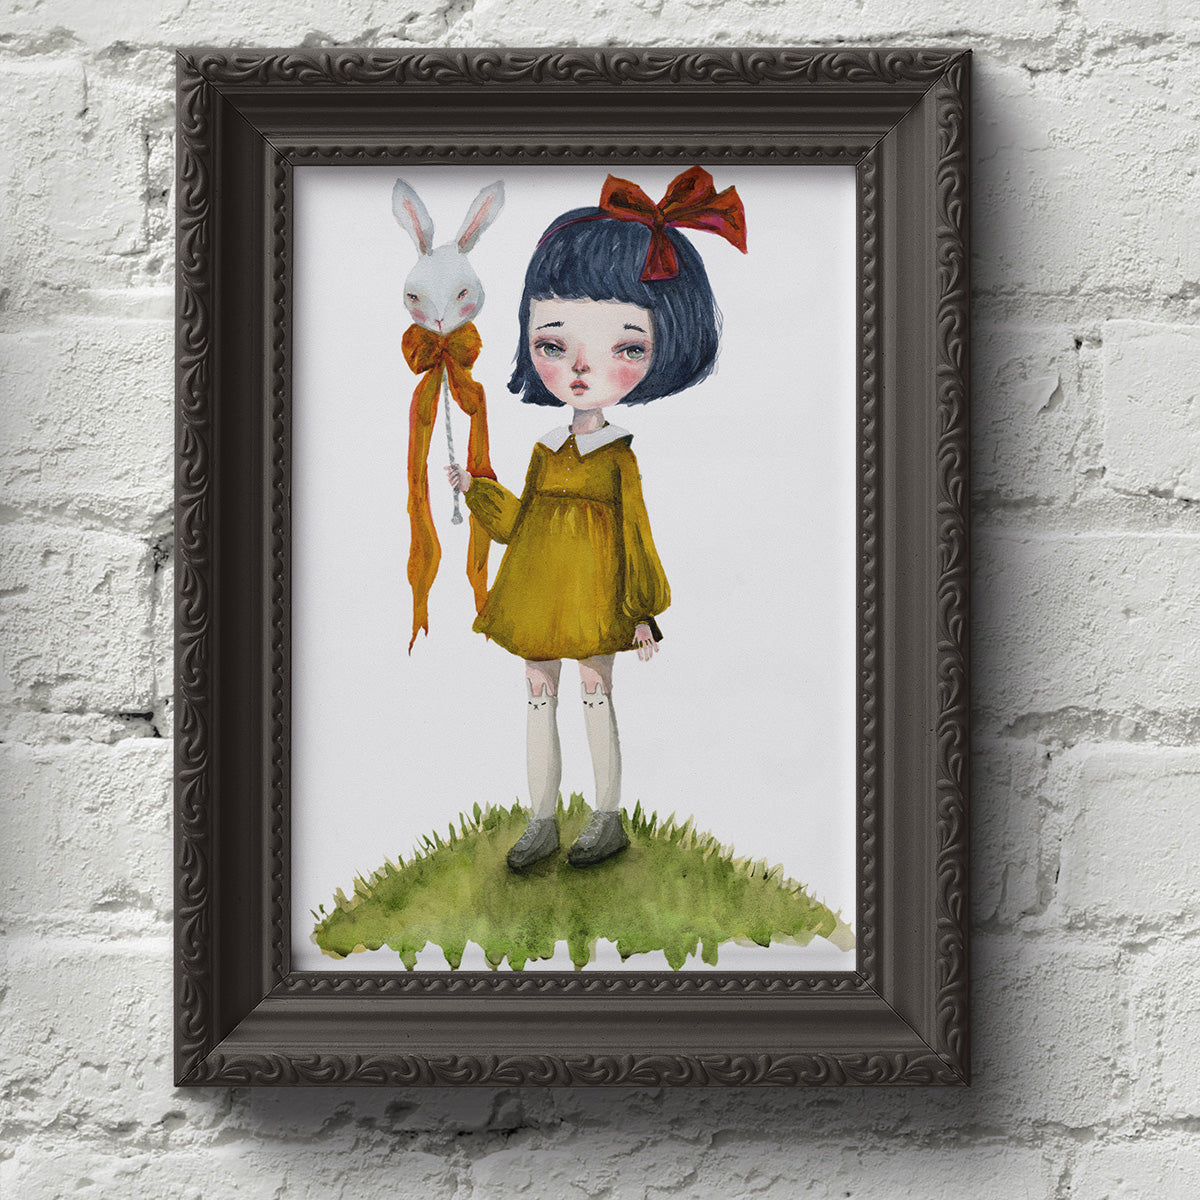 BUNNY SOCKS, Discontinued Art Prints by Danita Art